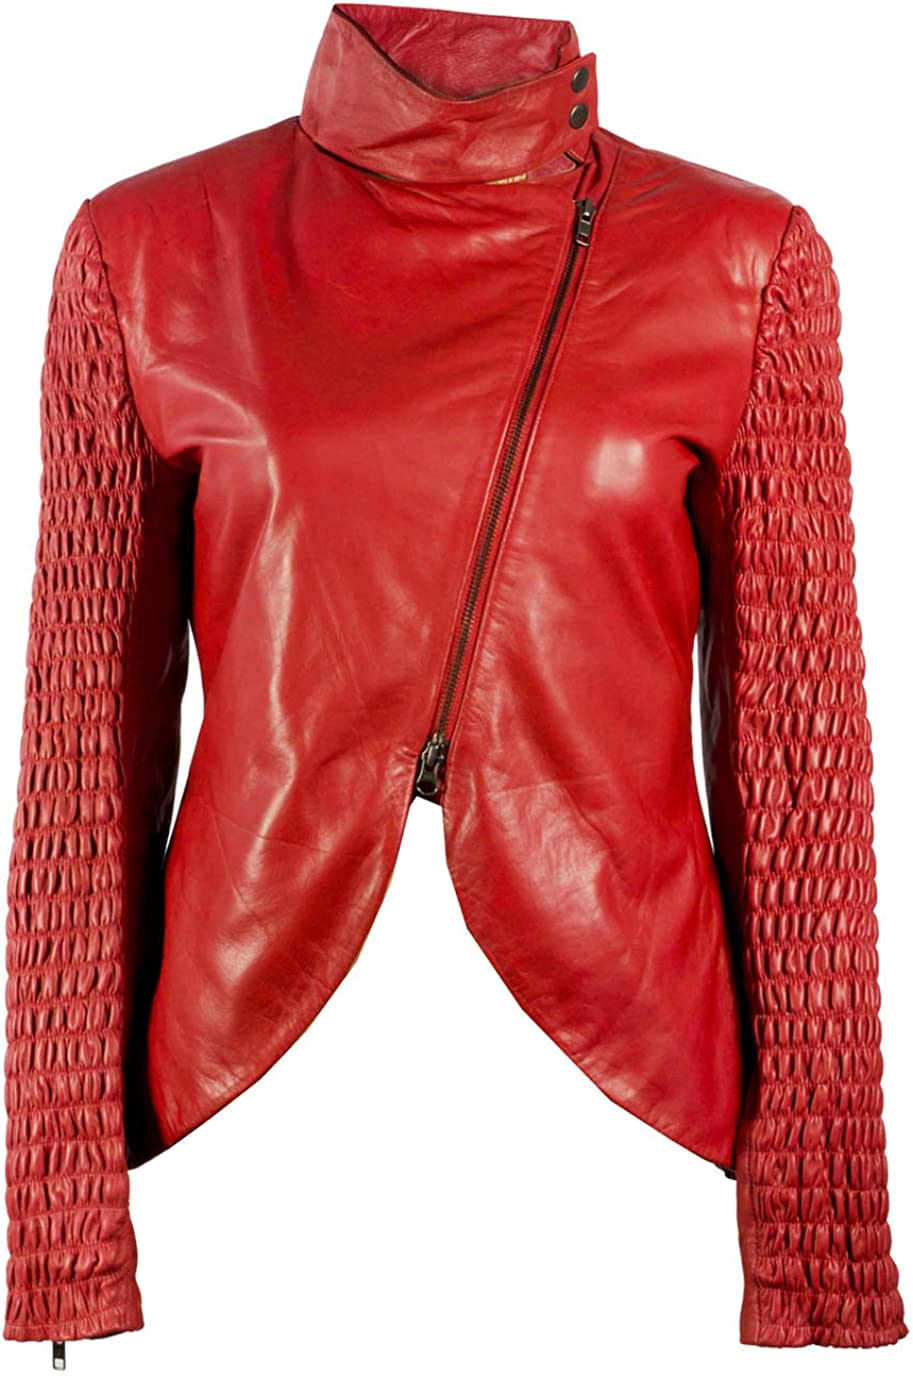 The UZ Global Western Chic Dark Red Ruched Panel Womens Faux Leather Jacket - Synthetic Leather Jacket